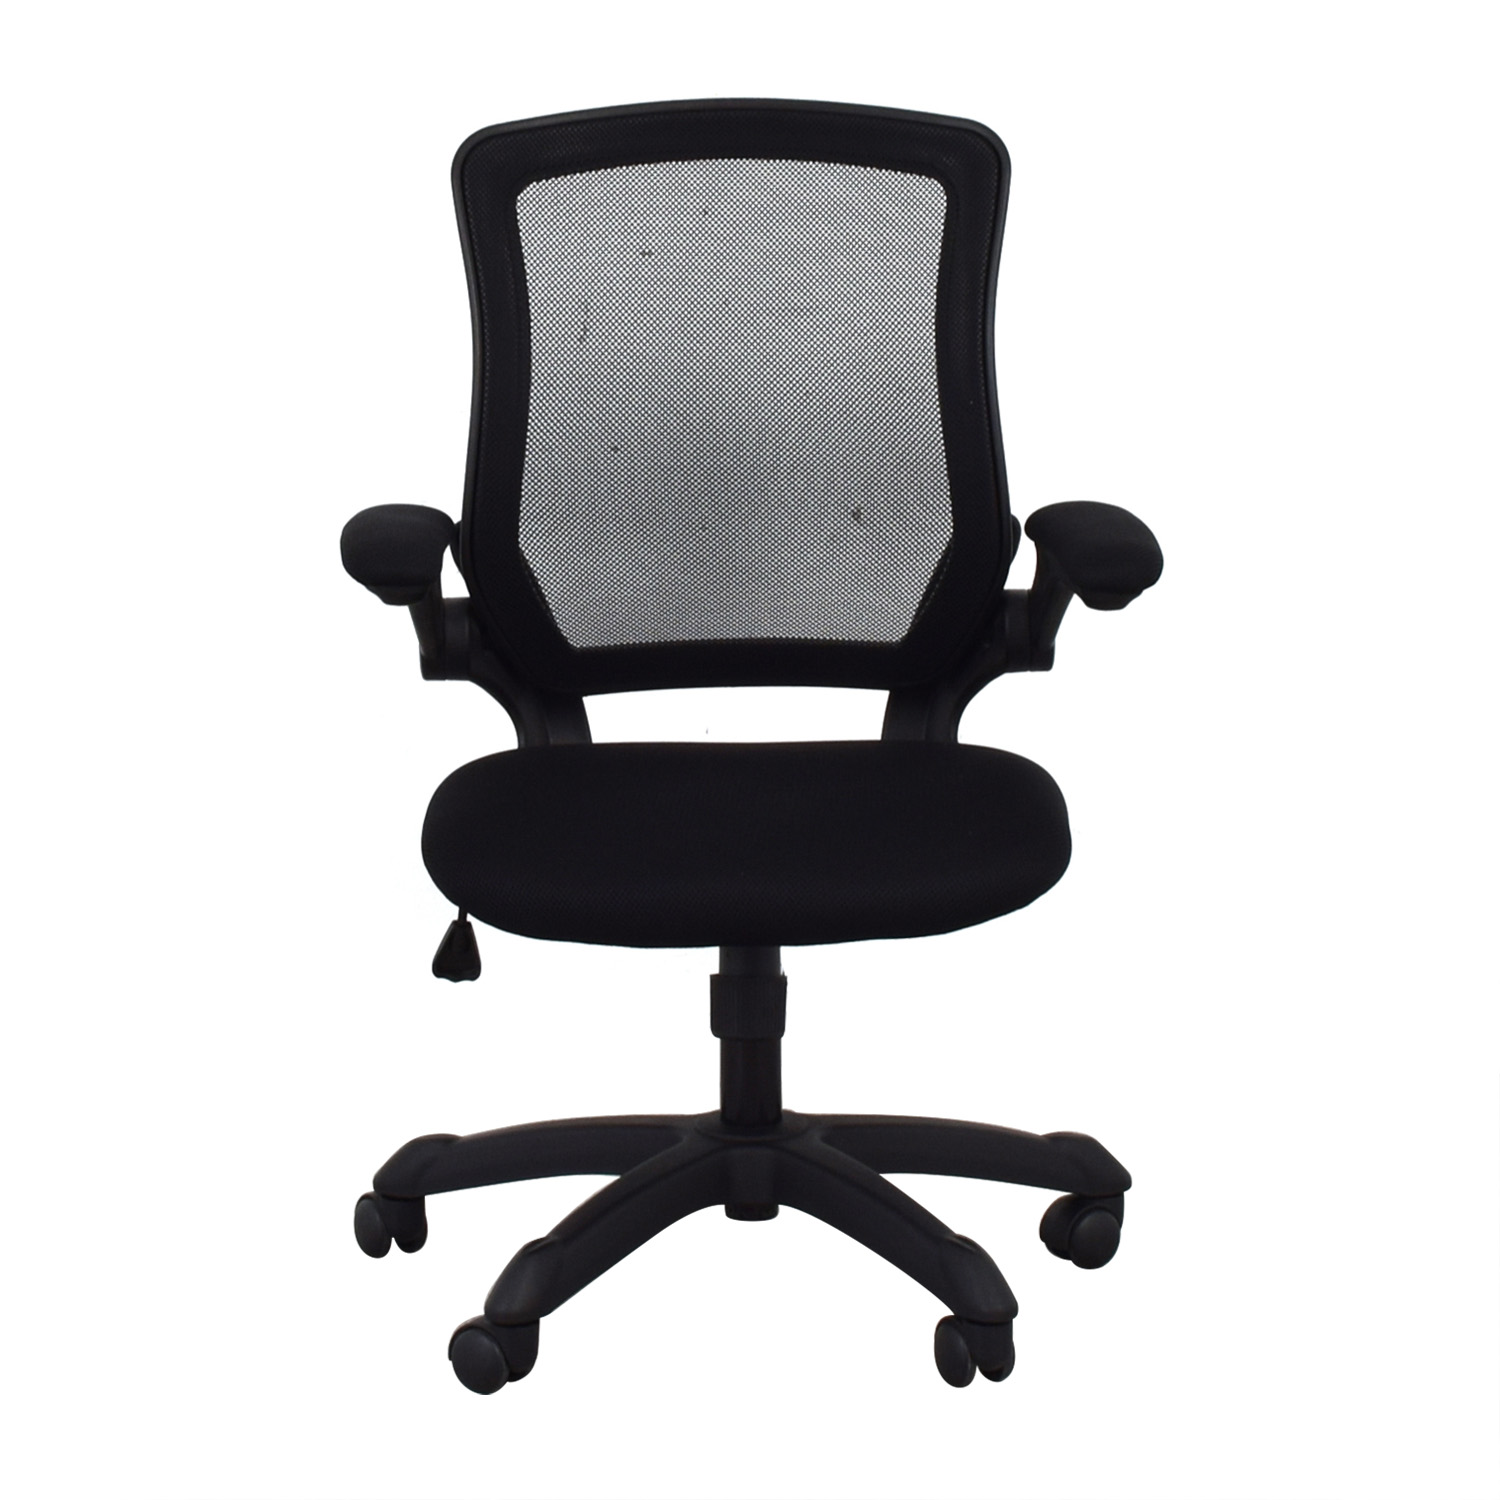 Black Mesh Office Chair nj